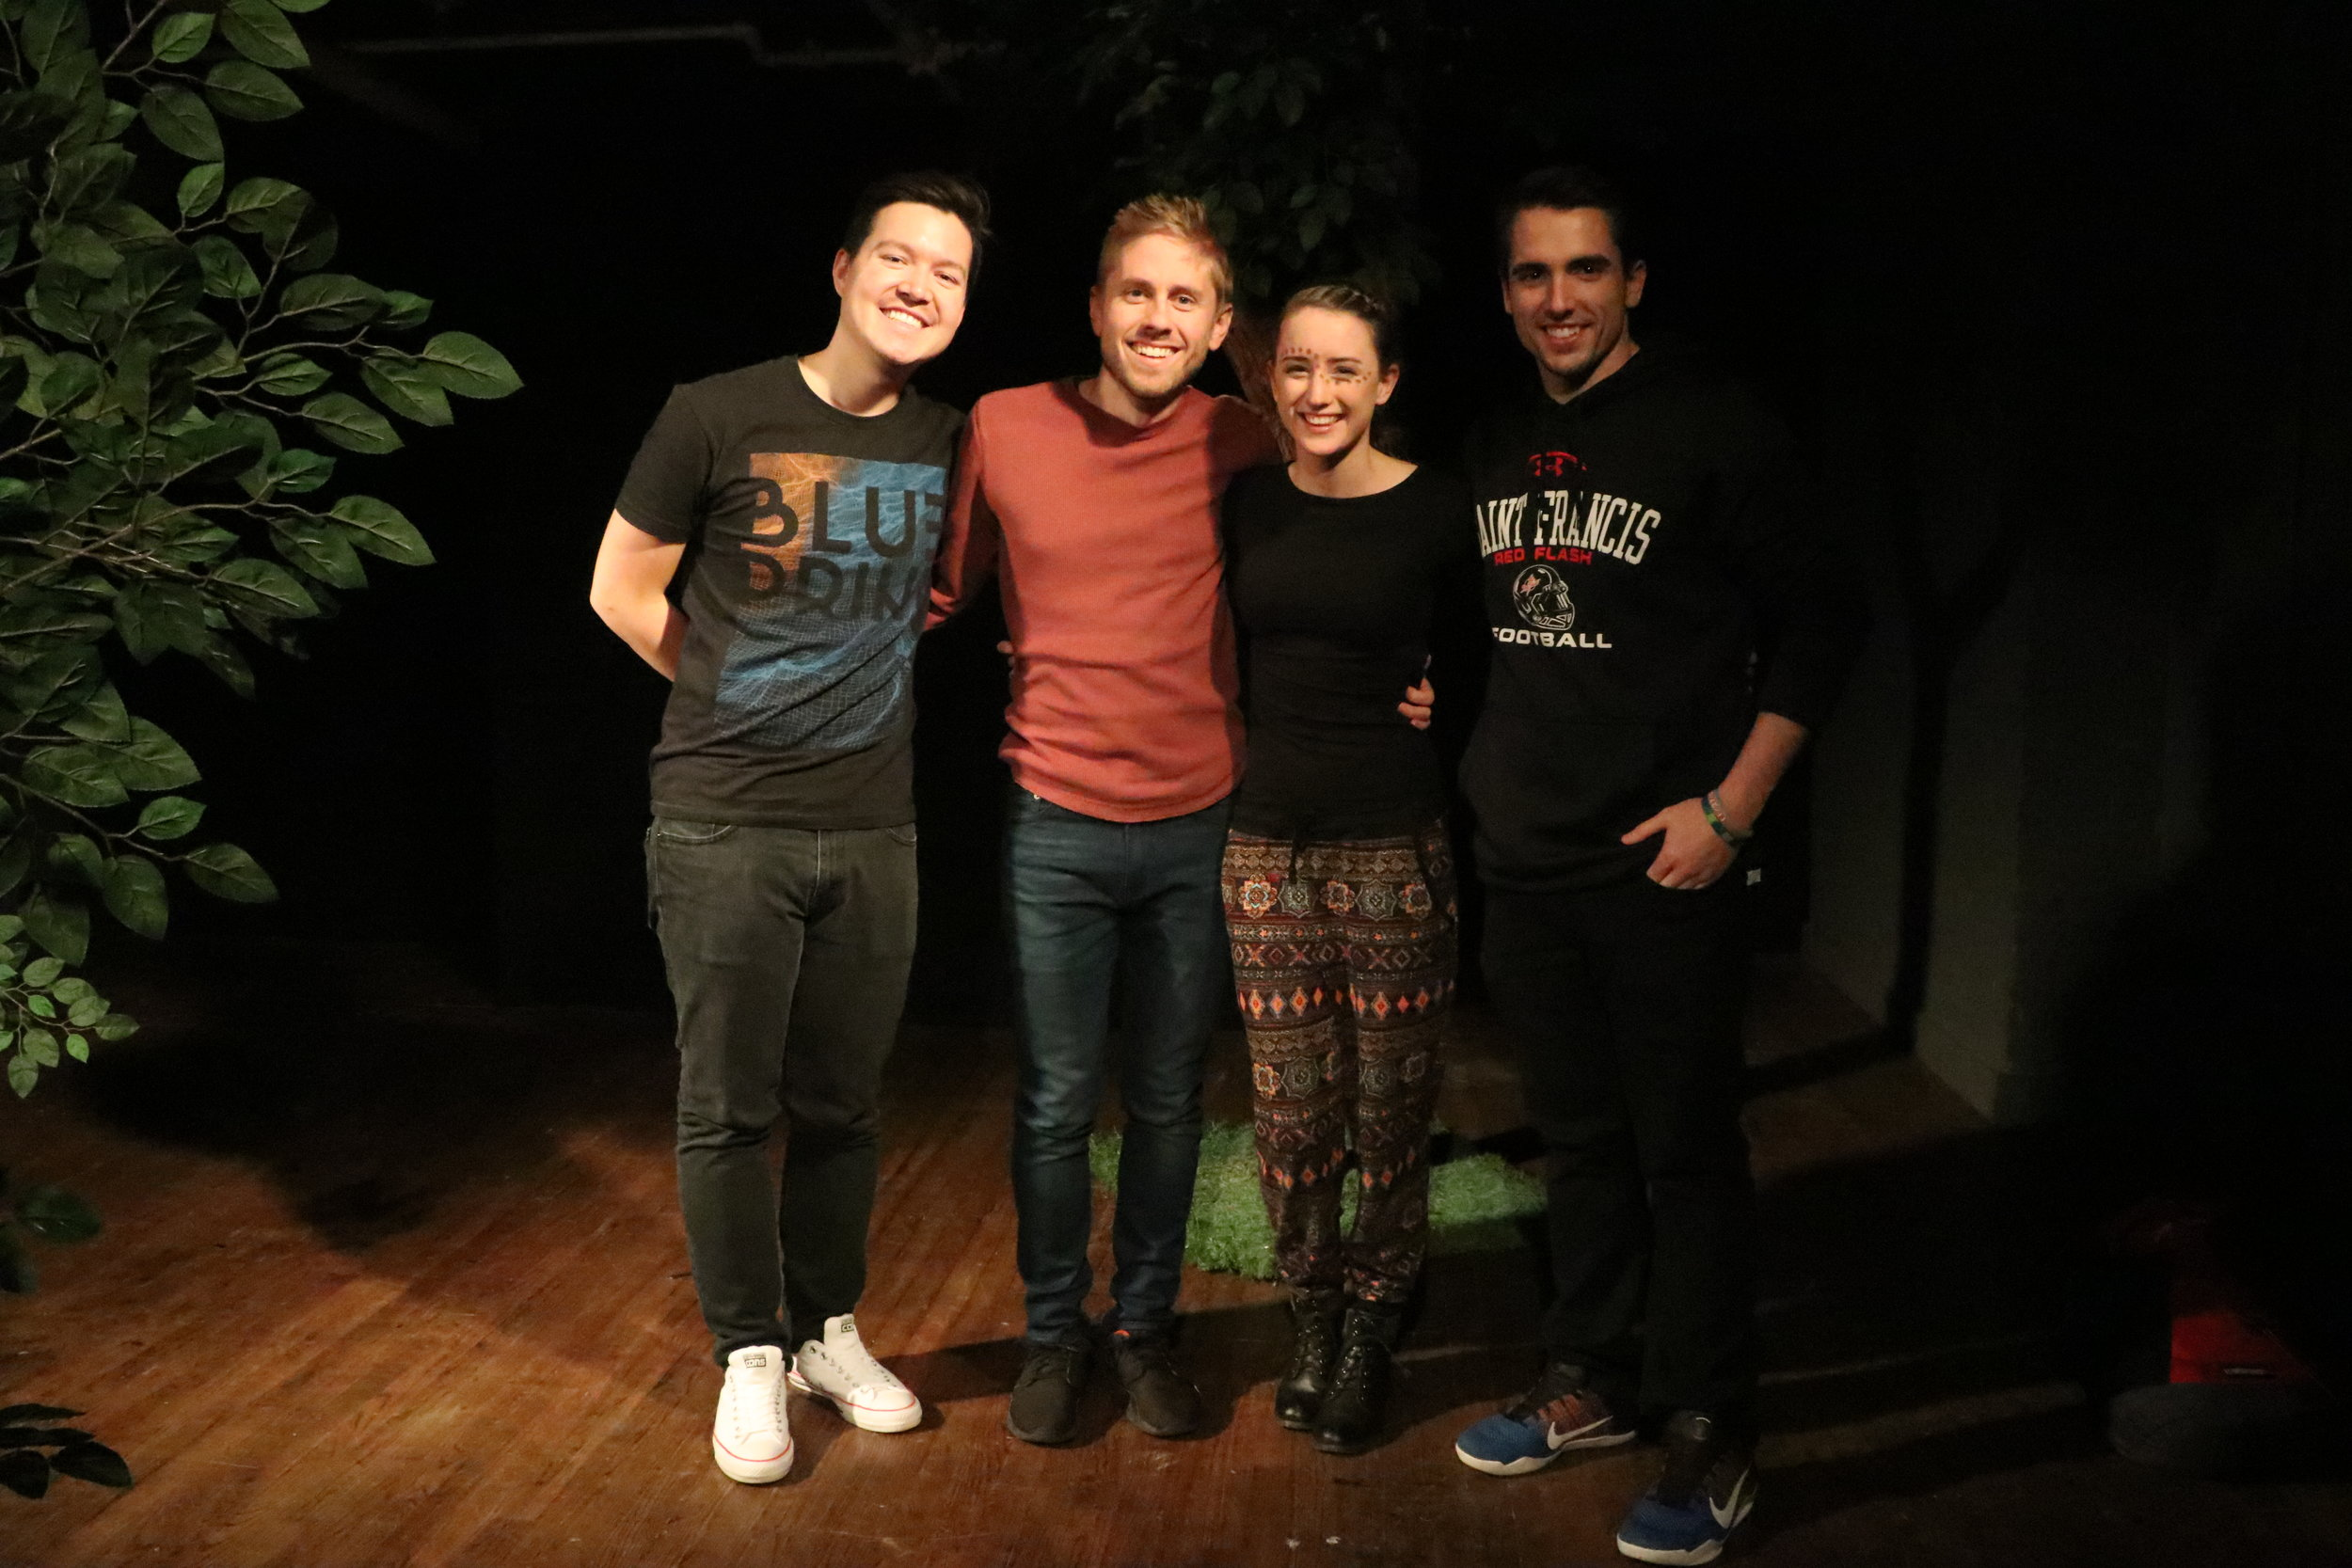 (L to R) Taylor Song, Matthew Justmann, Amy Letcher and Joseph James Pucciarella